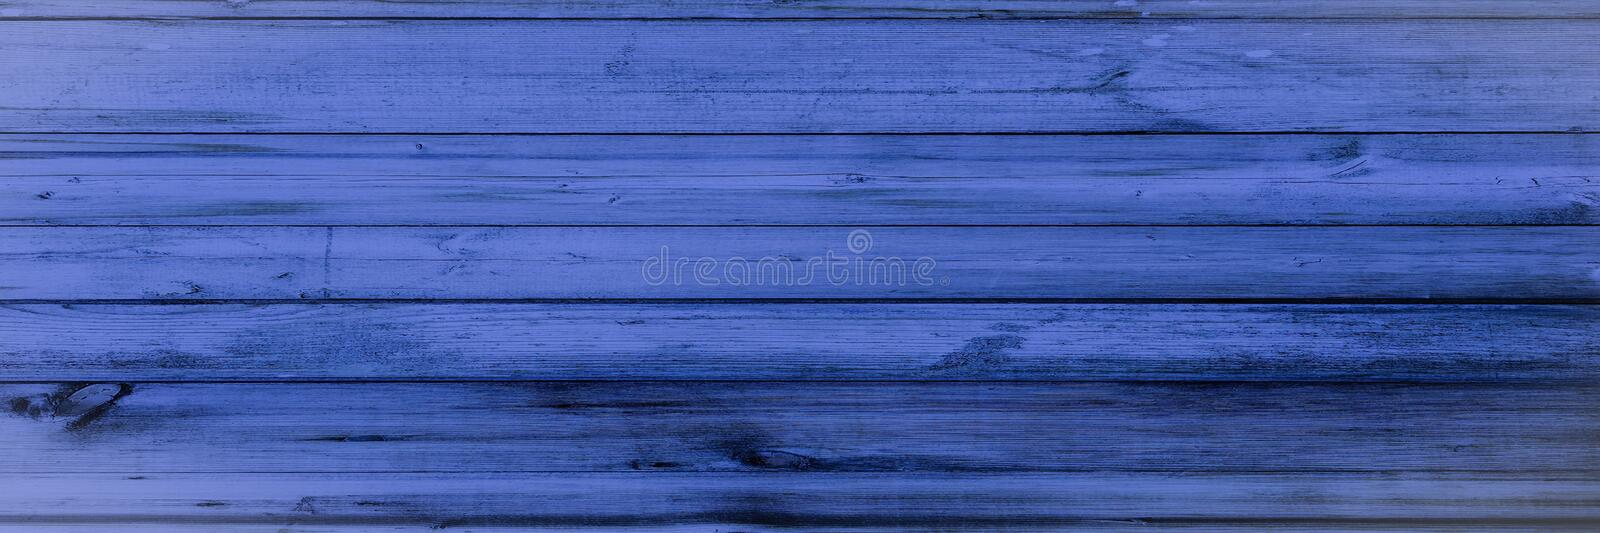 Wood texture background, wood planks. Old washed wood table pattern top view. Wood texture background, wood planks. Old washed wood table pattern top view stock photography